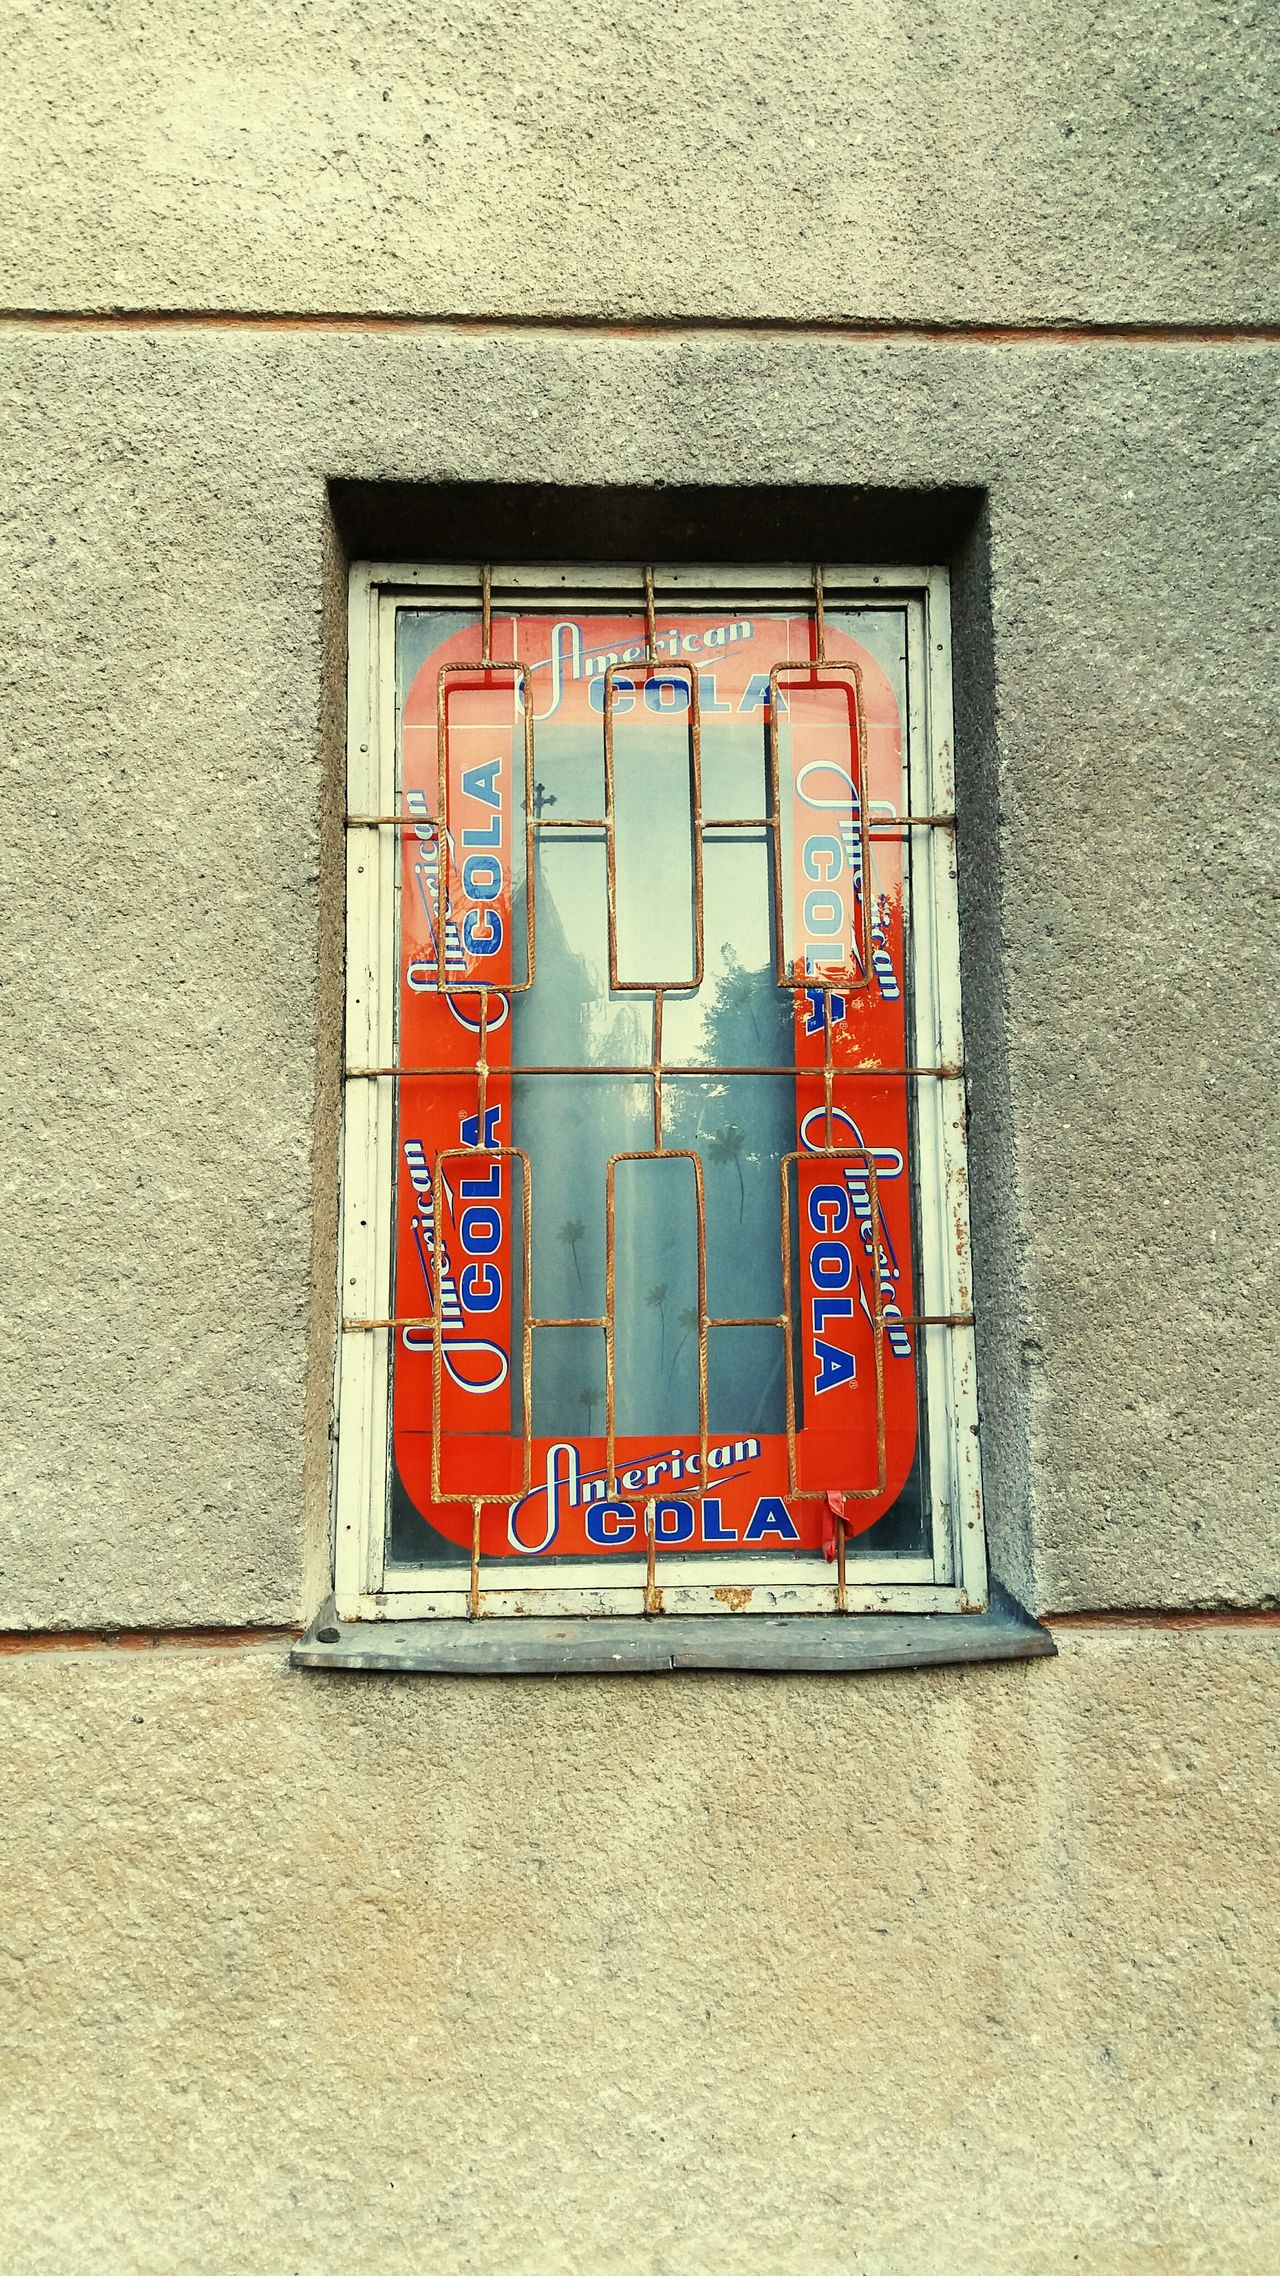 American Dream Cola Day Outdoors Architecture Built Structure Building Exterior Window Old-fashioned Drinking Juice